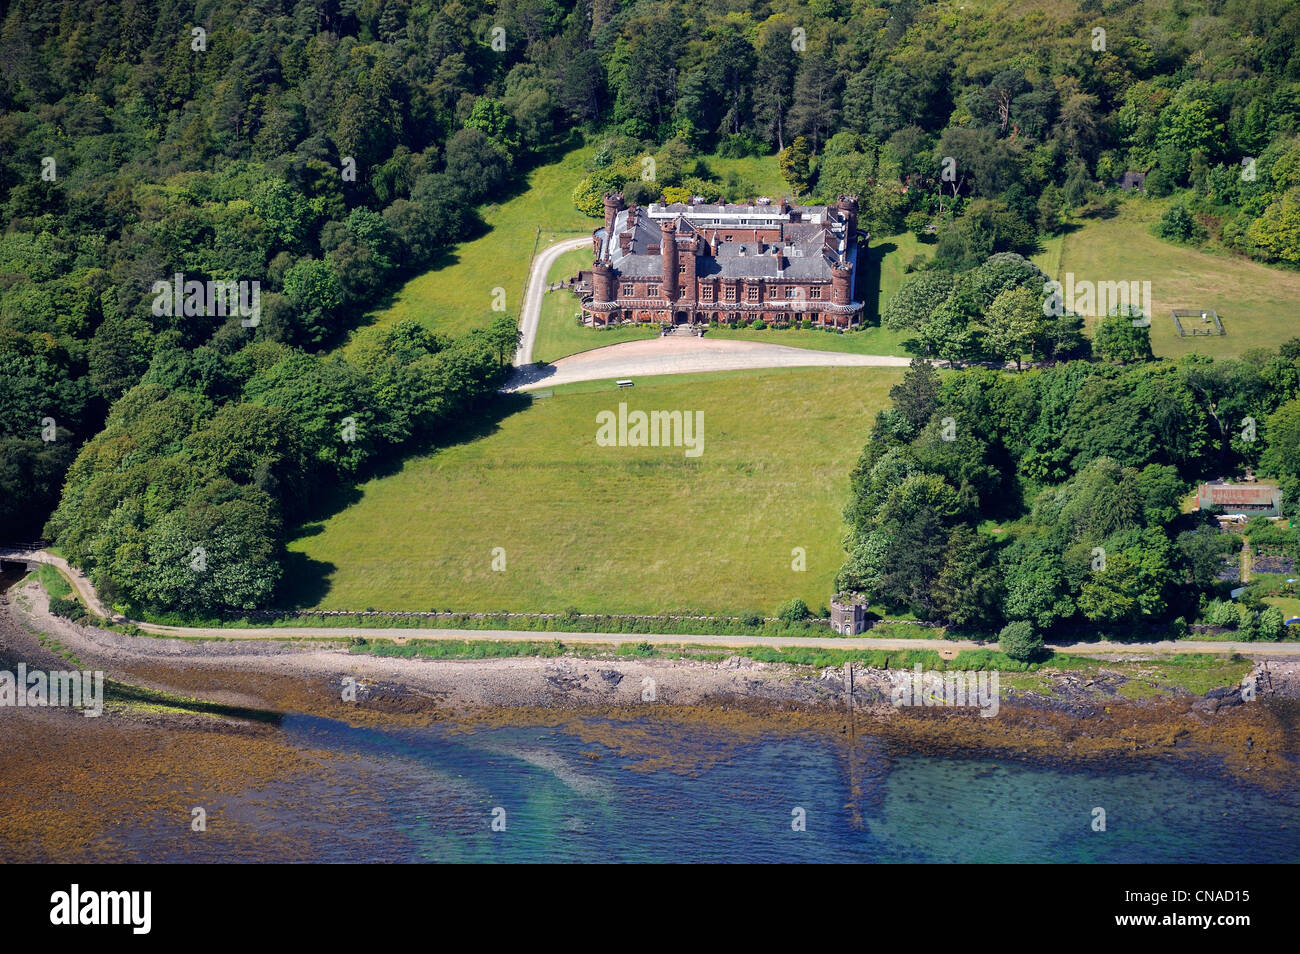 United Kingdom, Scotland, Highland, Inner Hebrides, Isle of Rum, Kinloch Castle was constructed by the millionaire - Stock Image